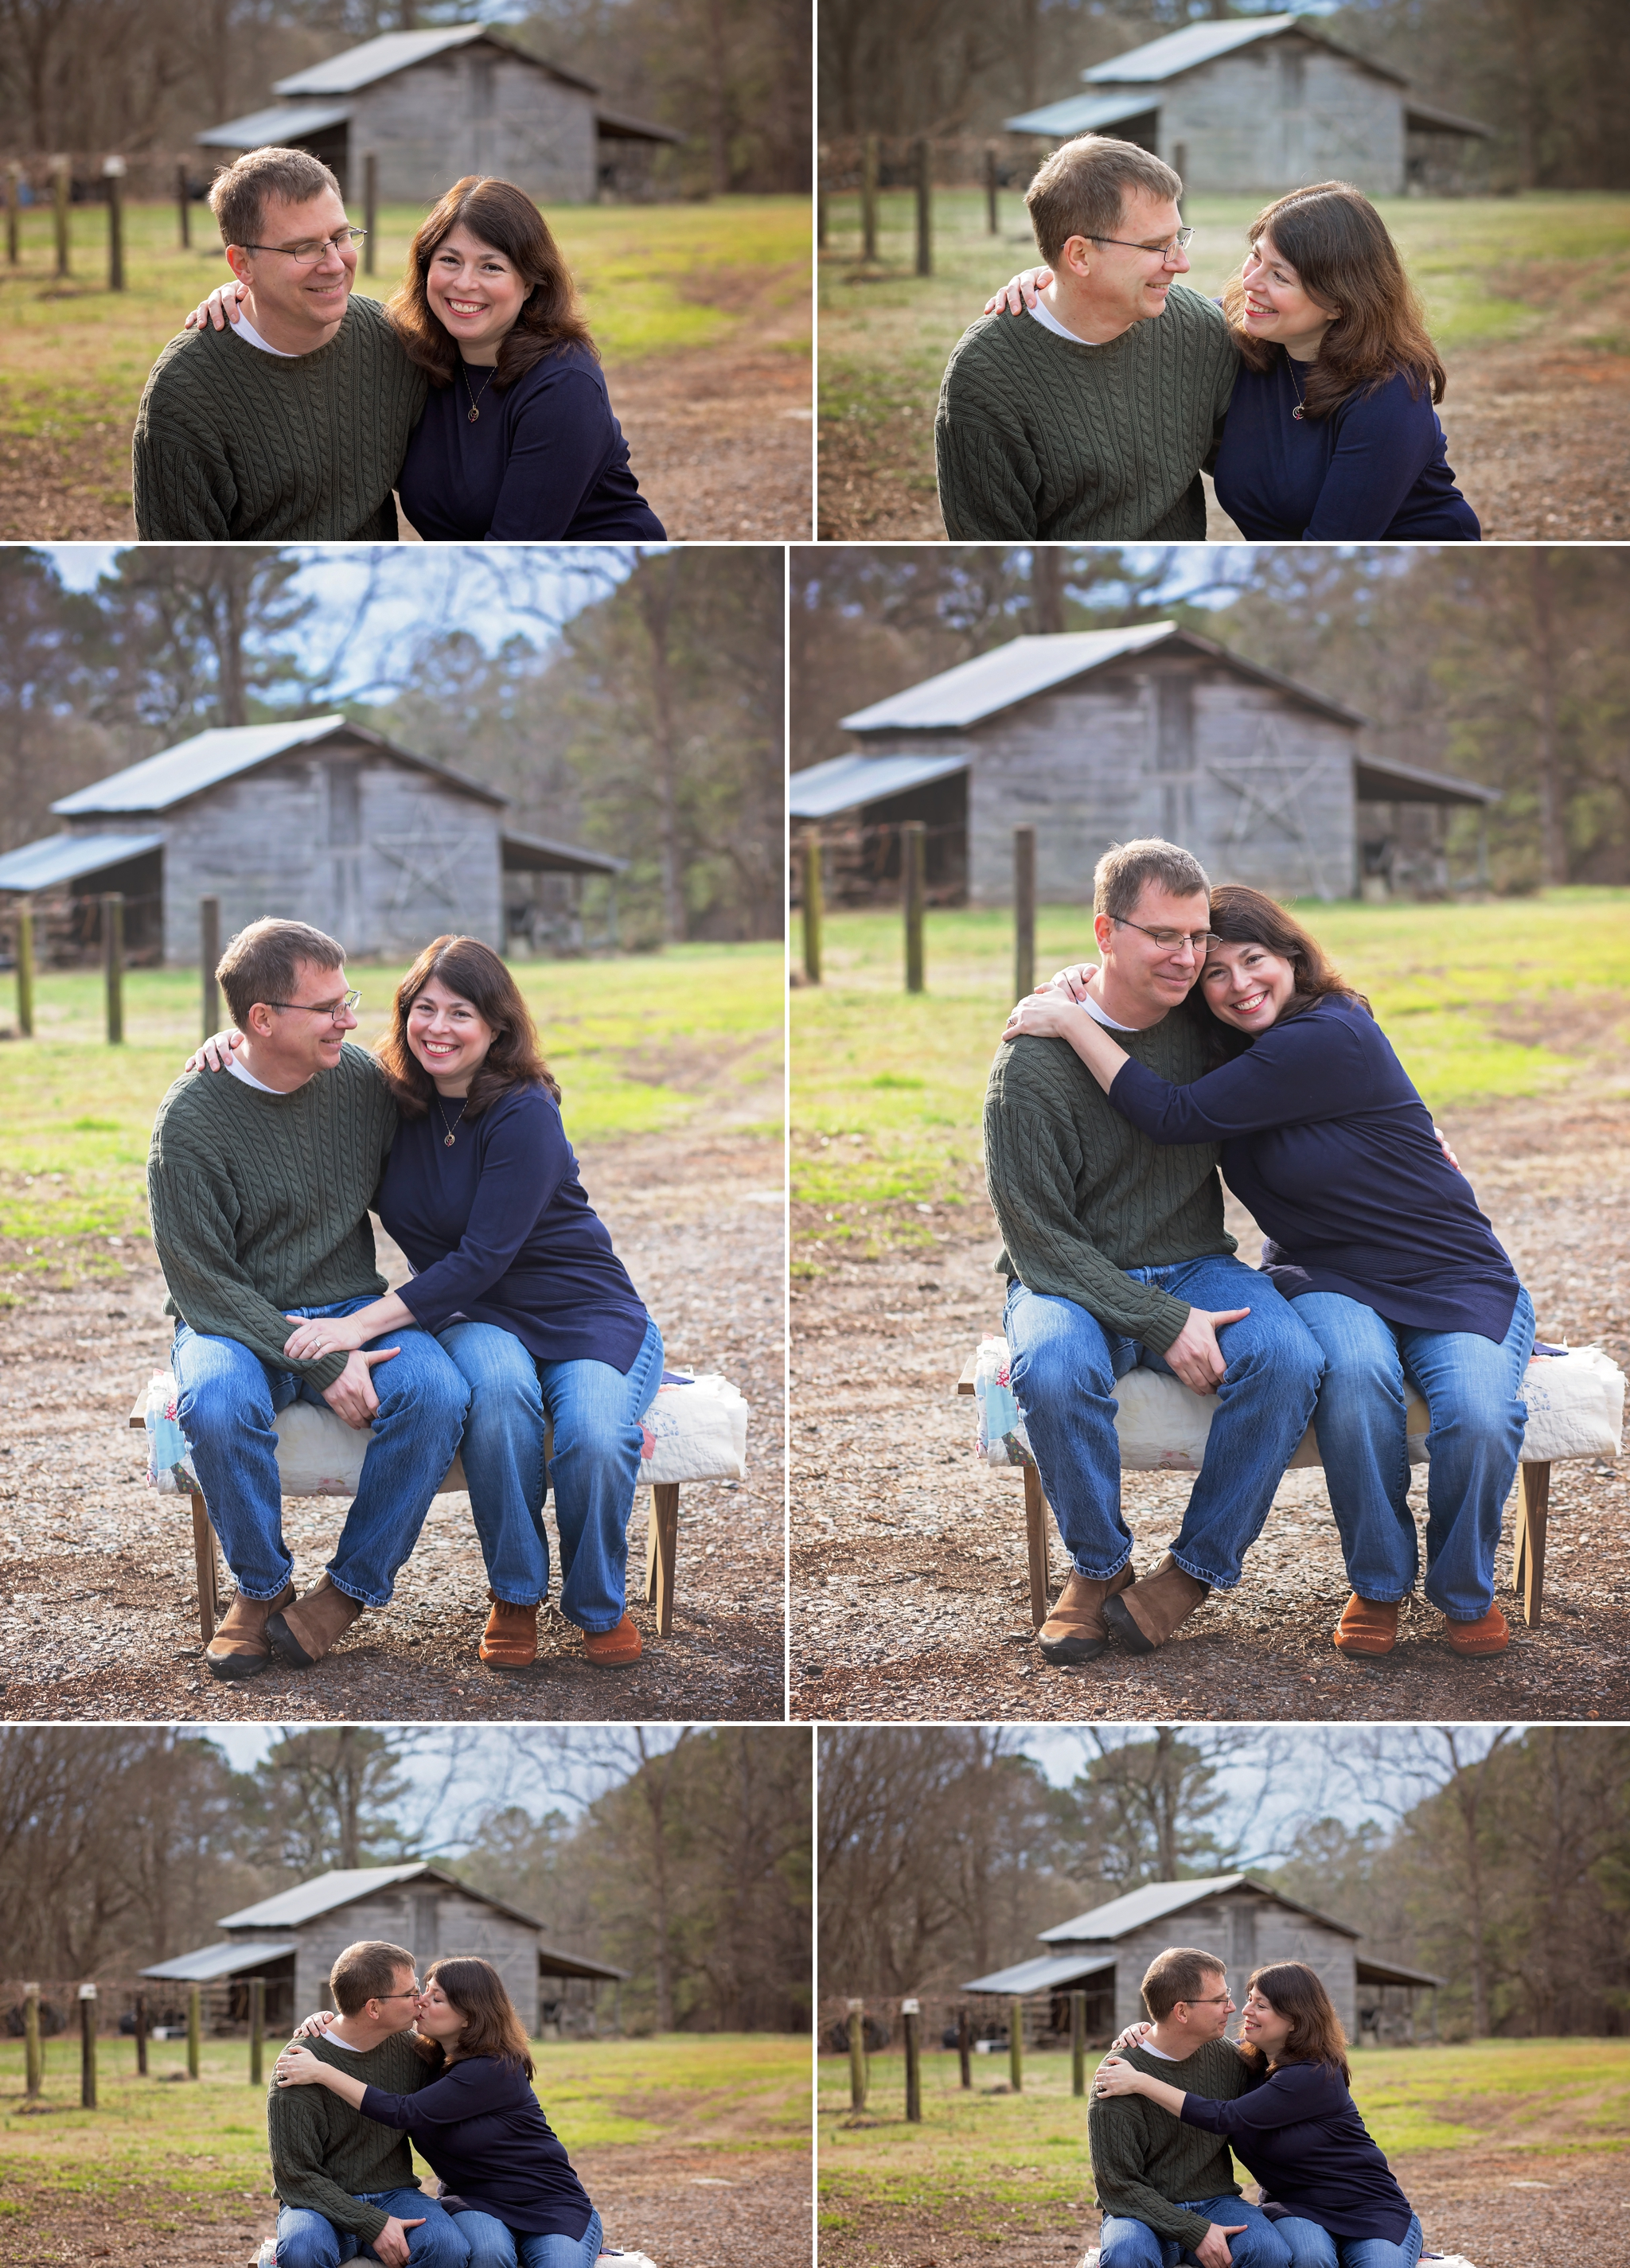 Parents snuggle on picnic table during family photo session in Sanford NC.